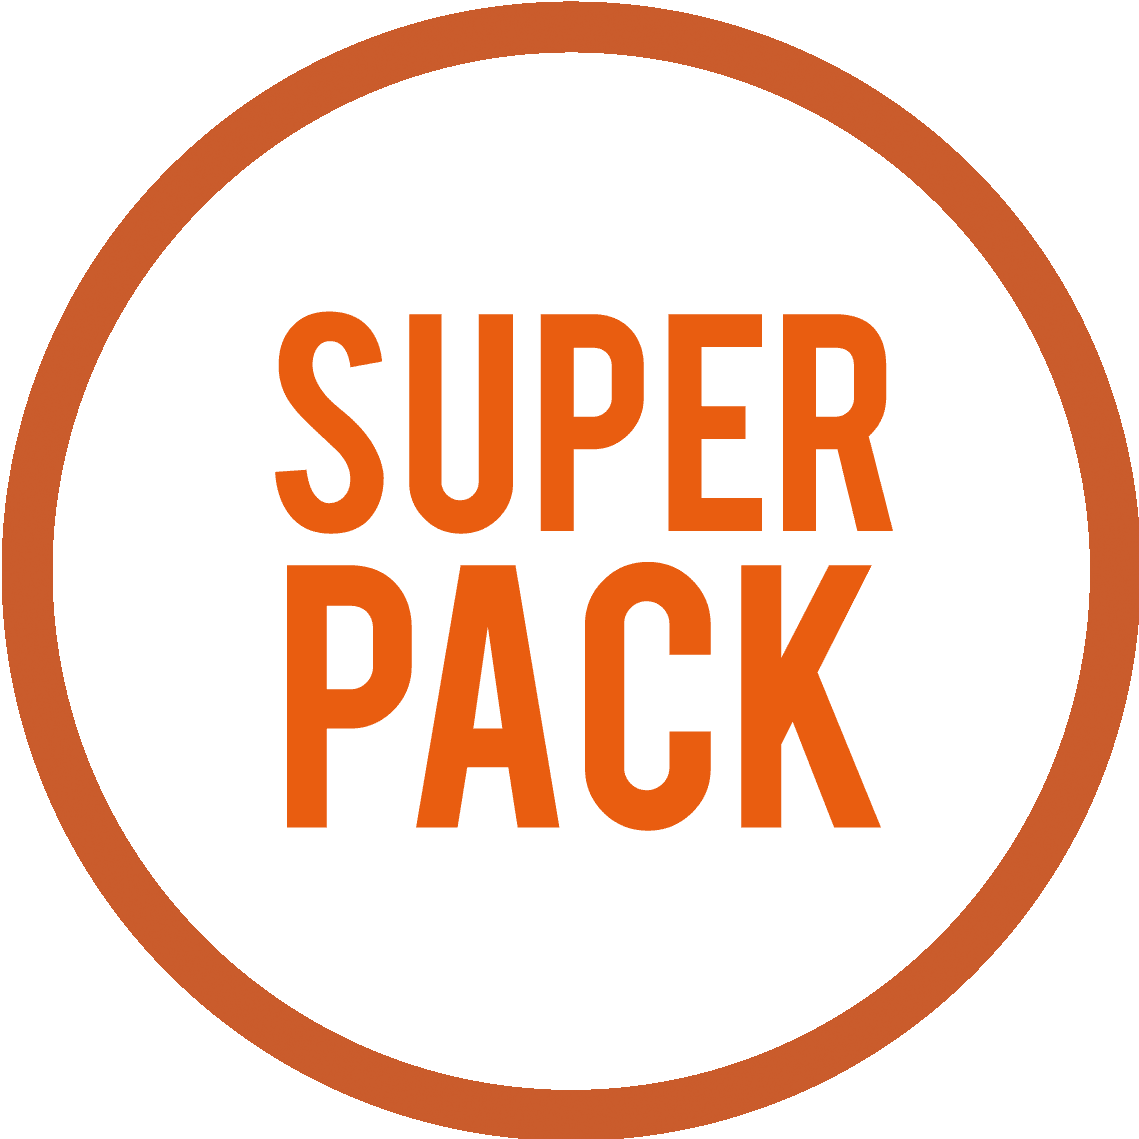 ACR3RD_SUPER_PACK